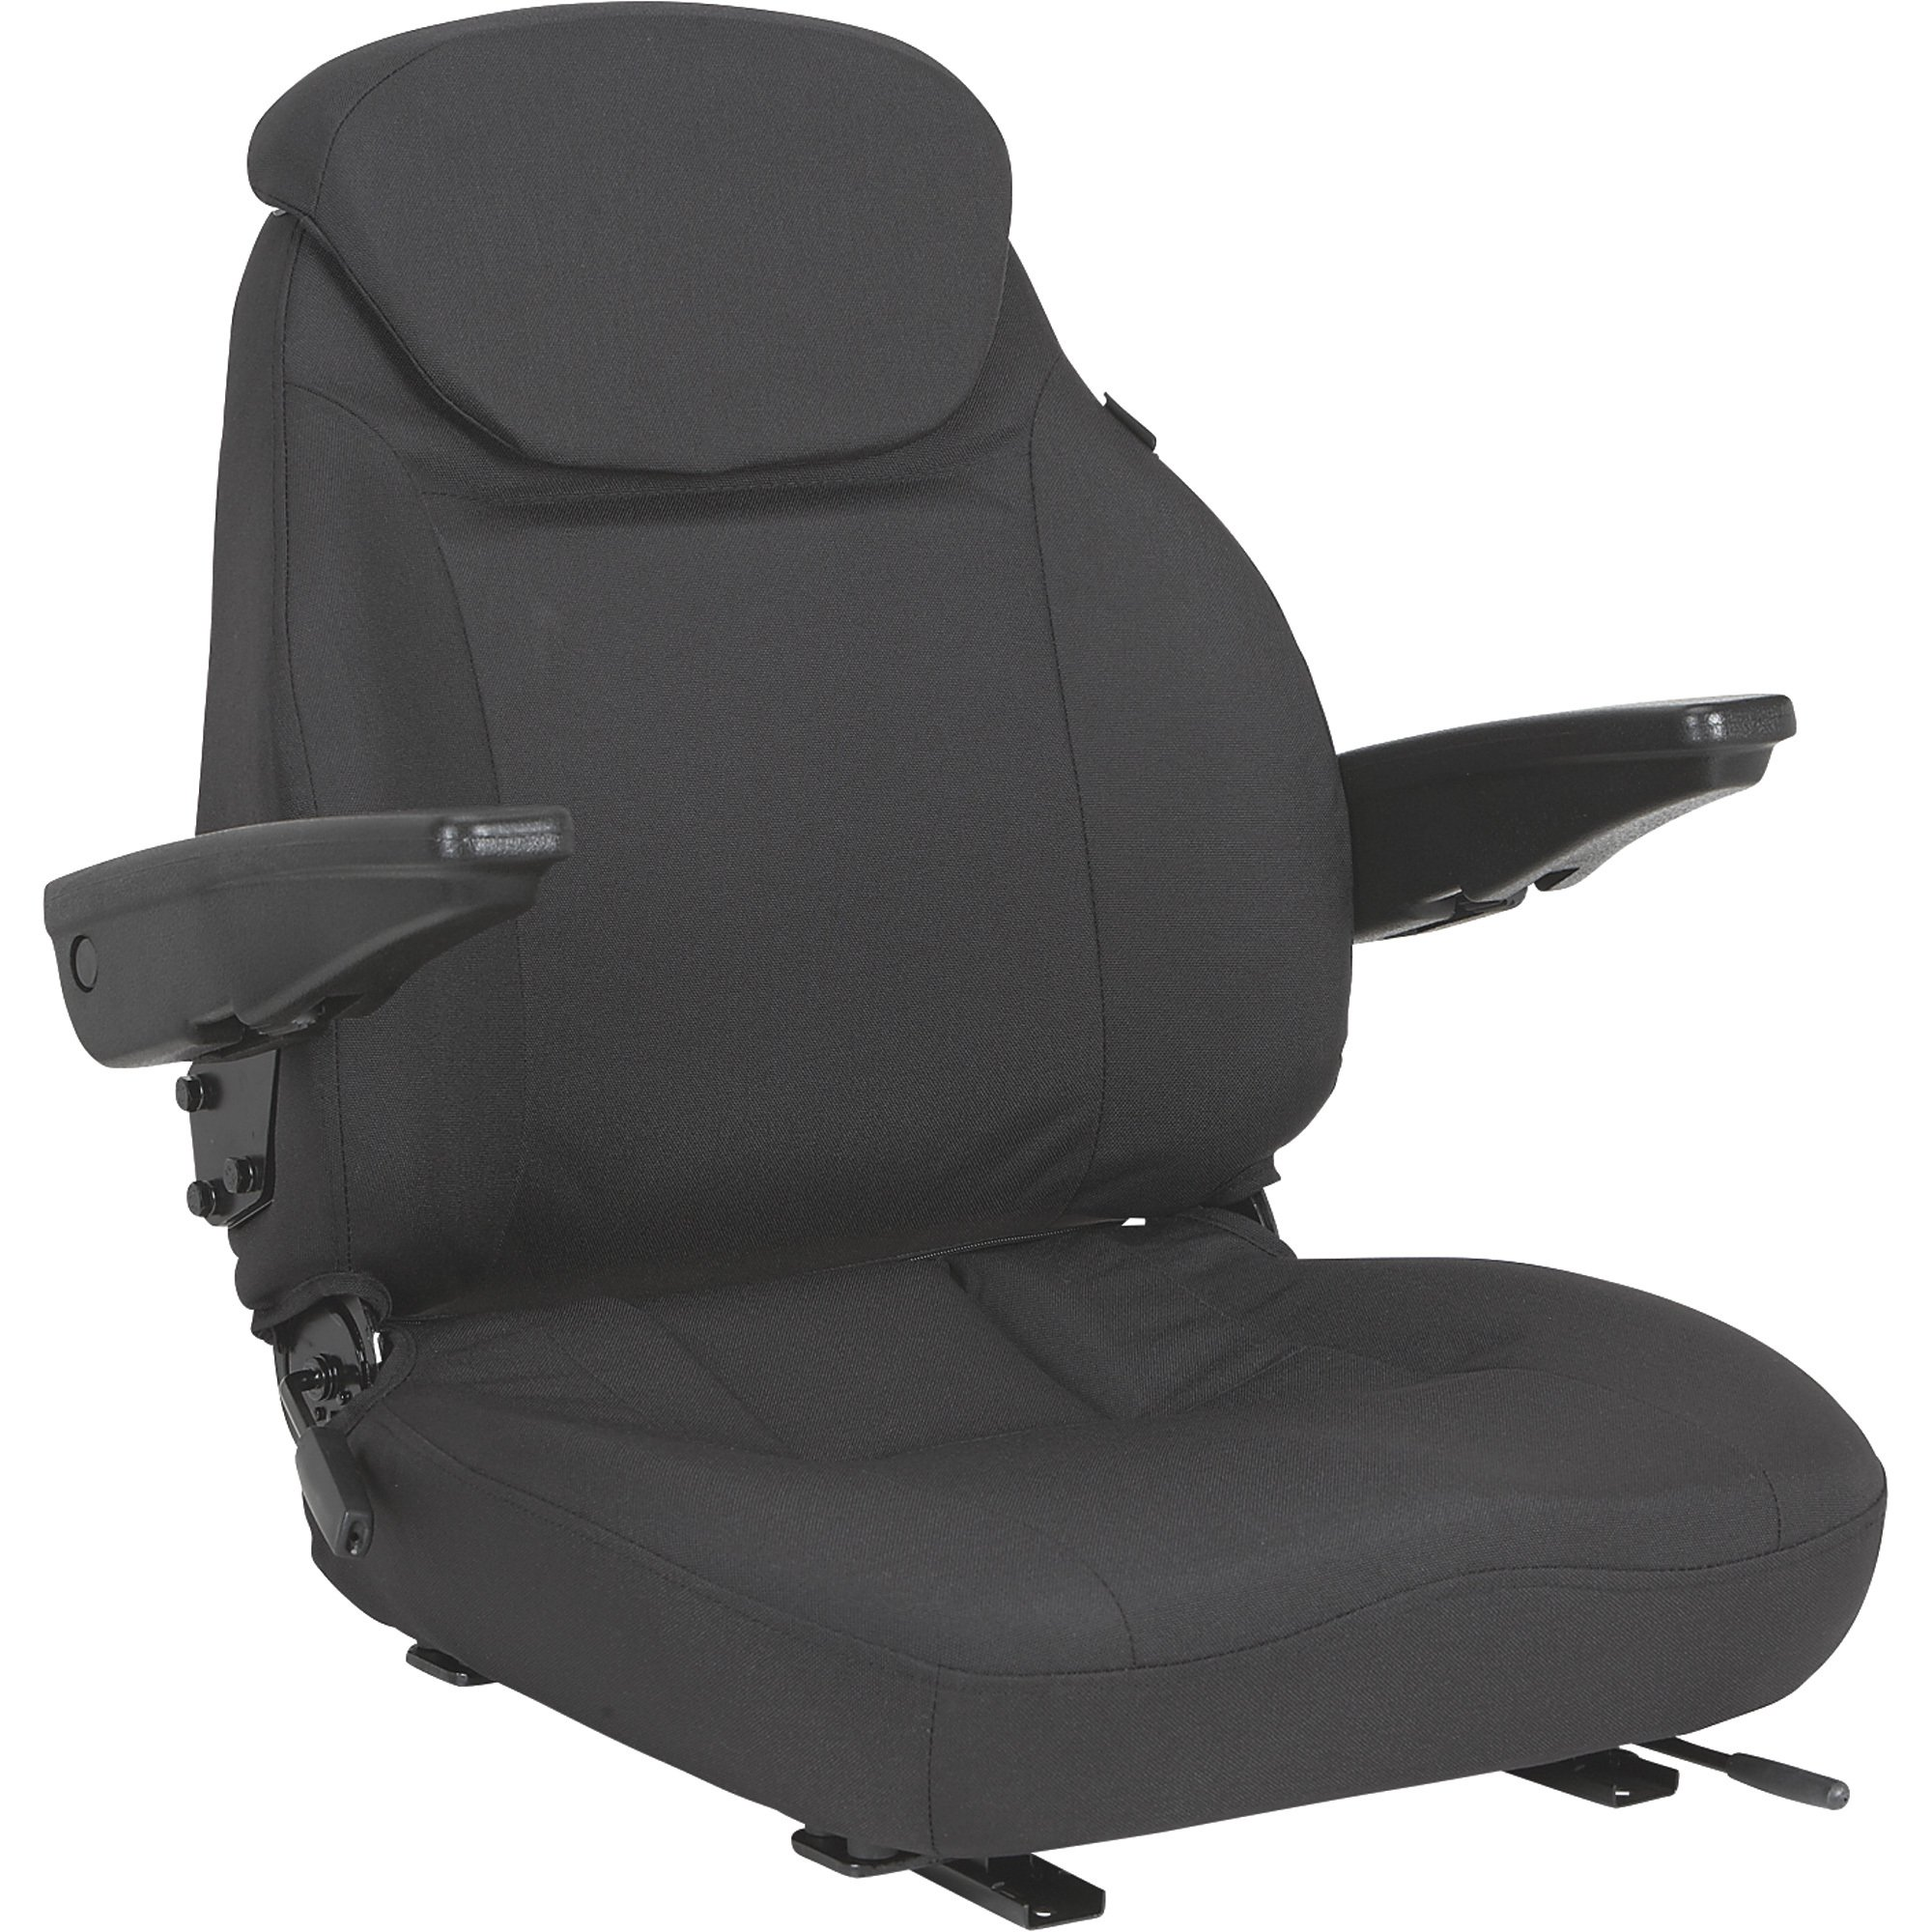 Tractor Seats | Northern Tool + Equipment